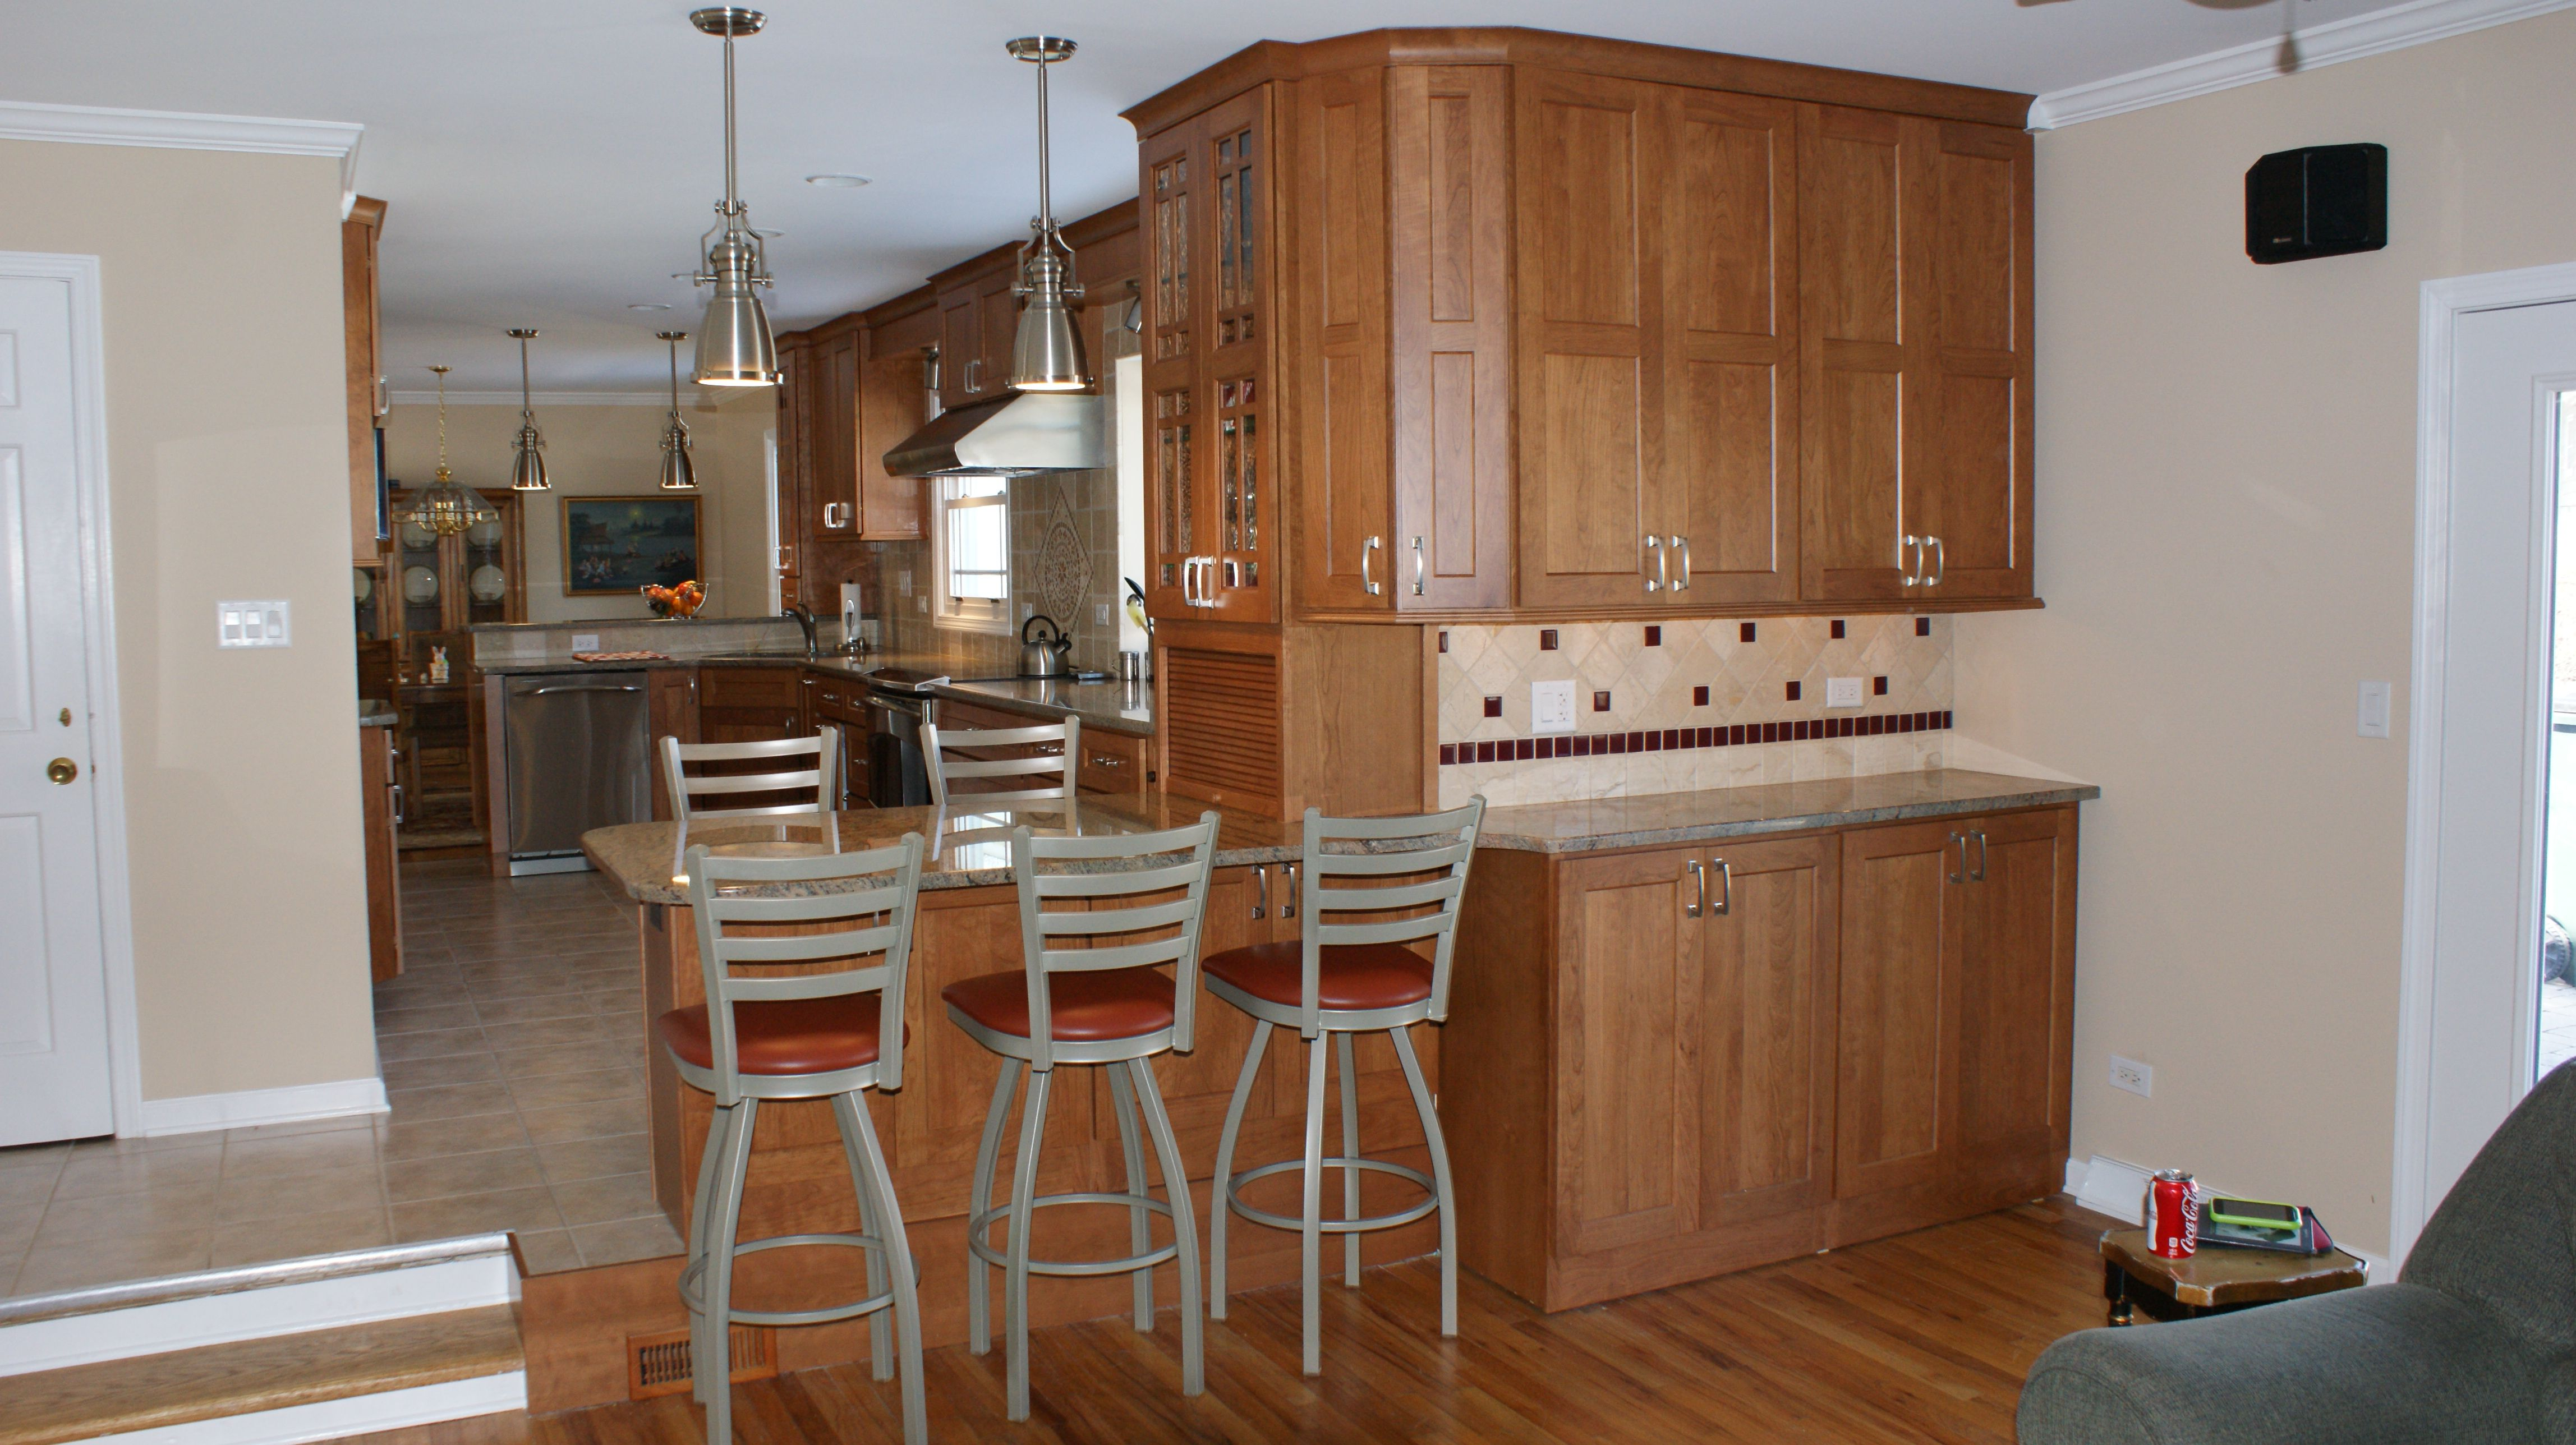 kitchen ideas and kitchen designs by j b kitchen designs we cover illinois from the wisconsin on j kitchen id=46704